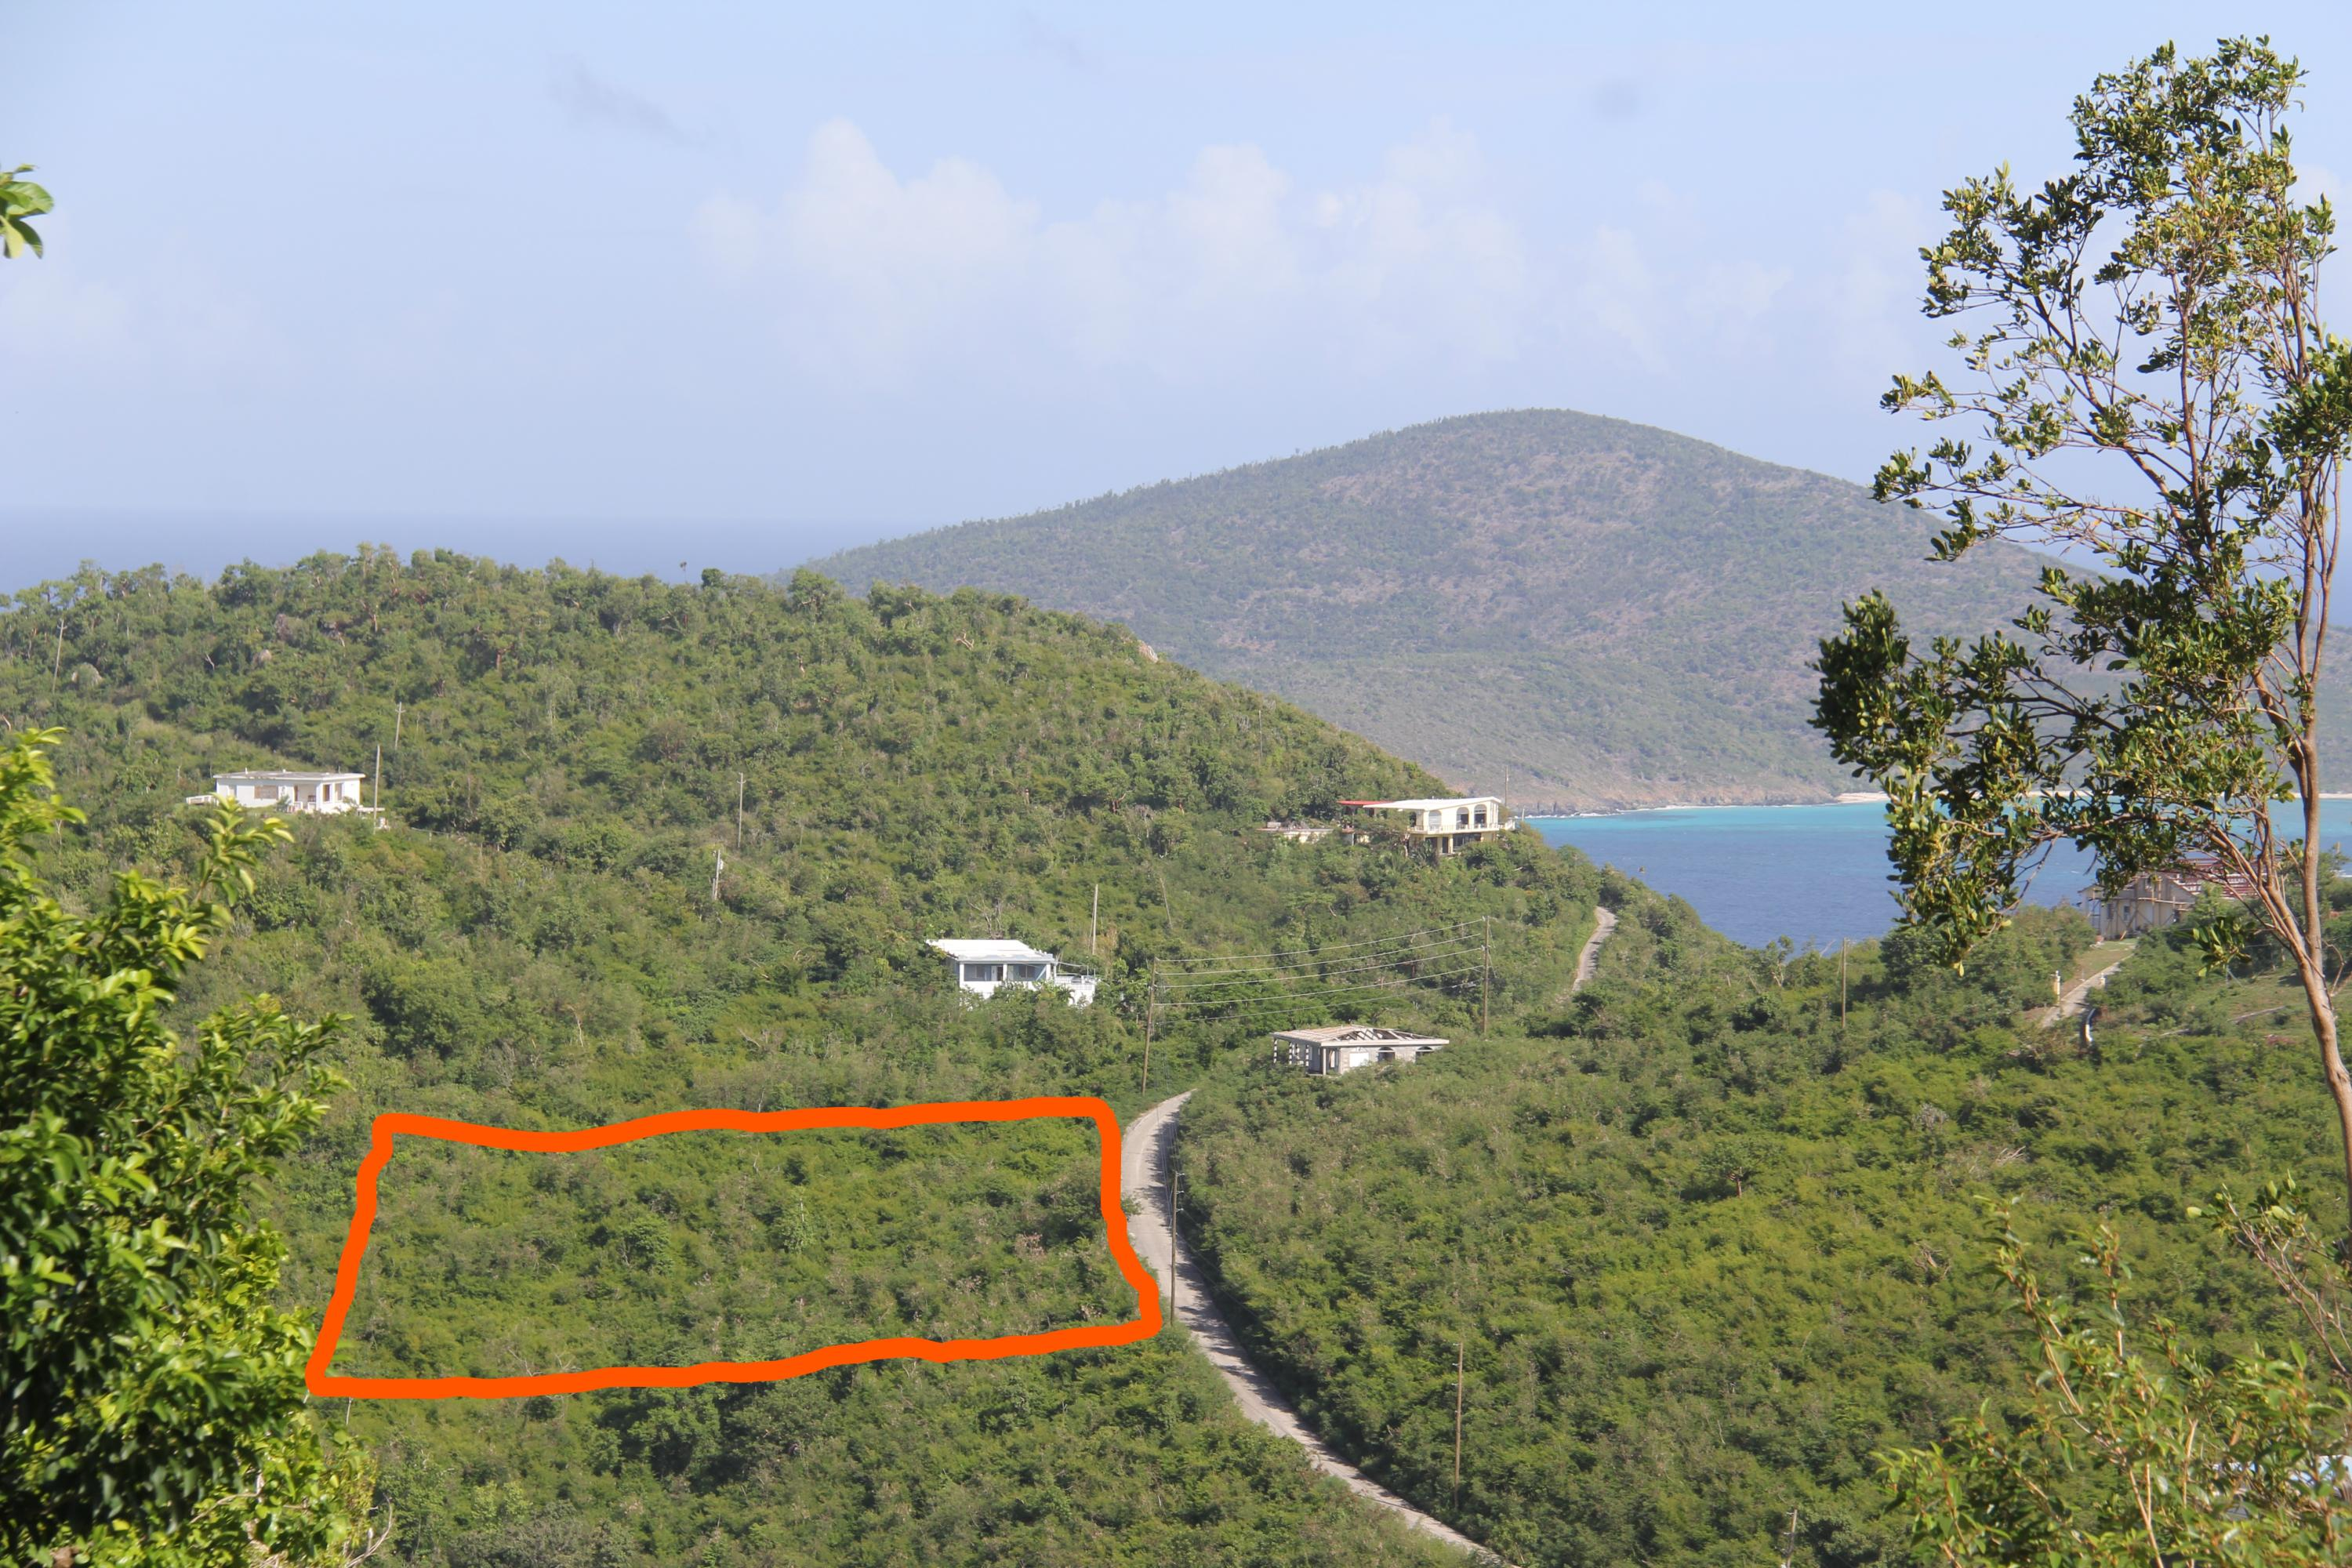 Land for Sale at 1D Mandahl GNS 1D Mandahl GNS St Thomas, Virgin Islands 00802 United States Virgin Islands